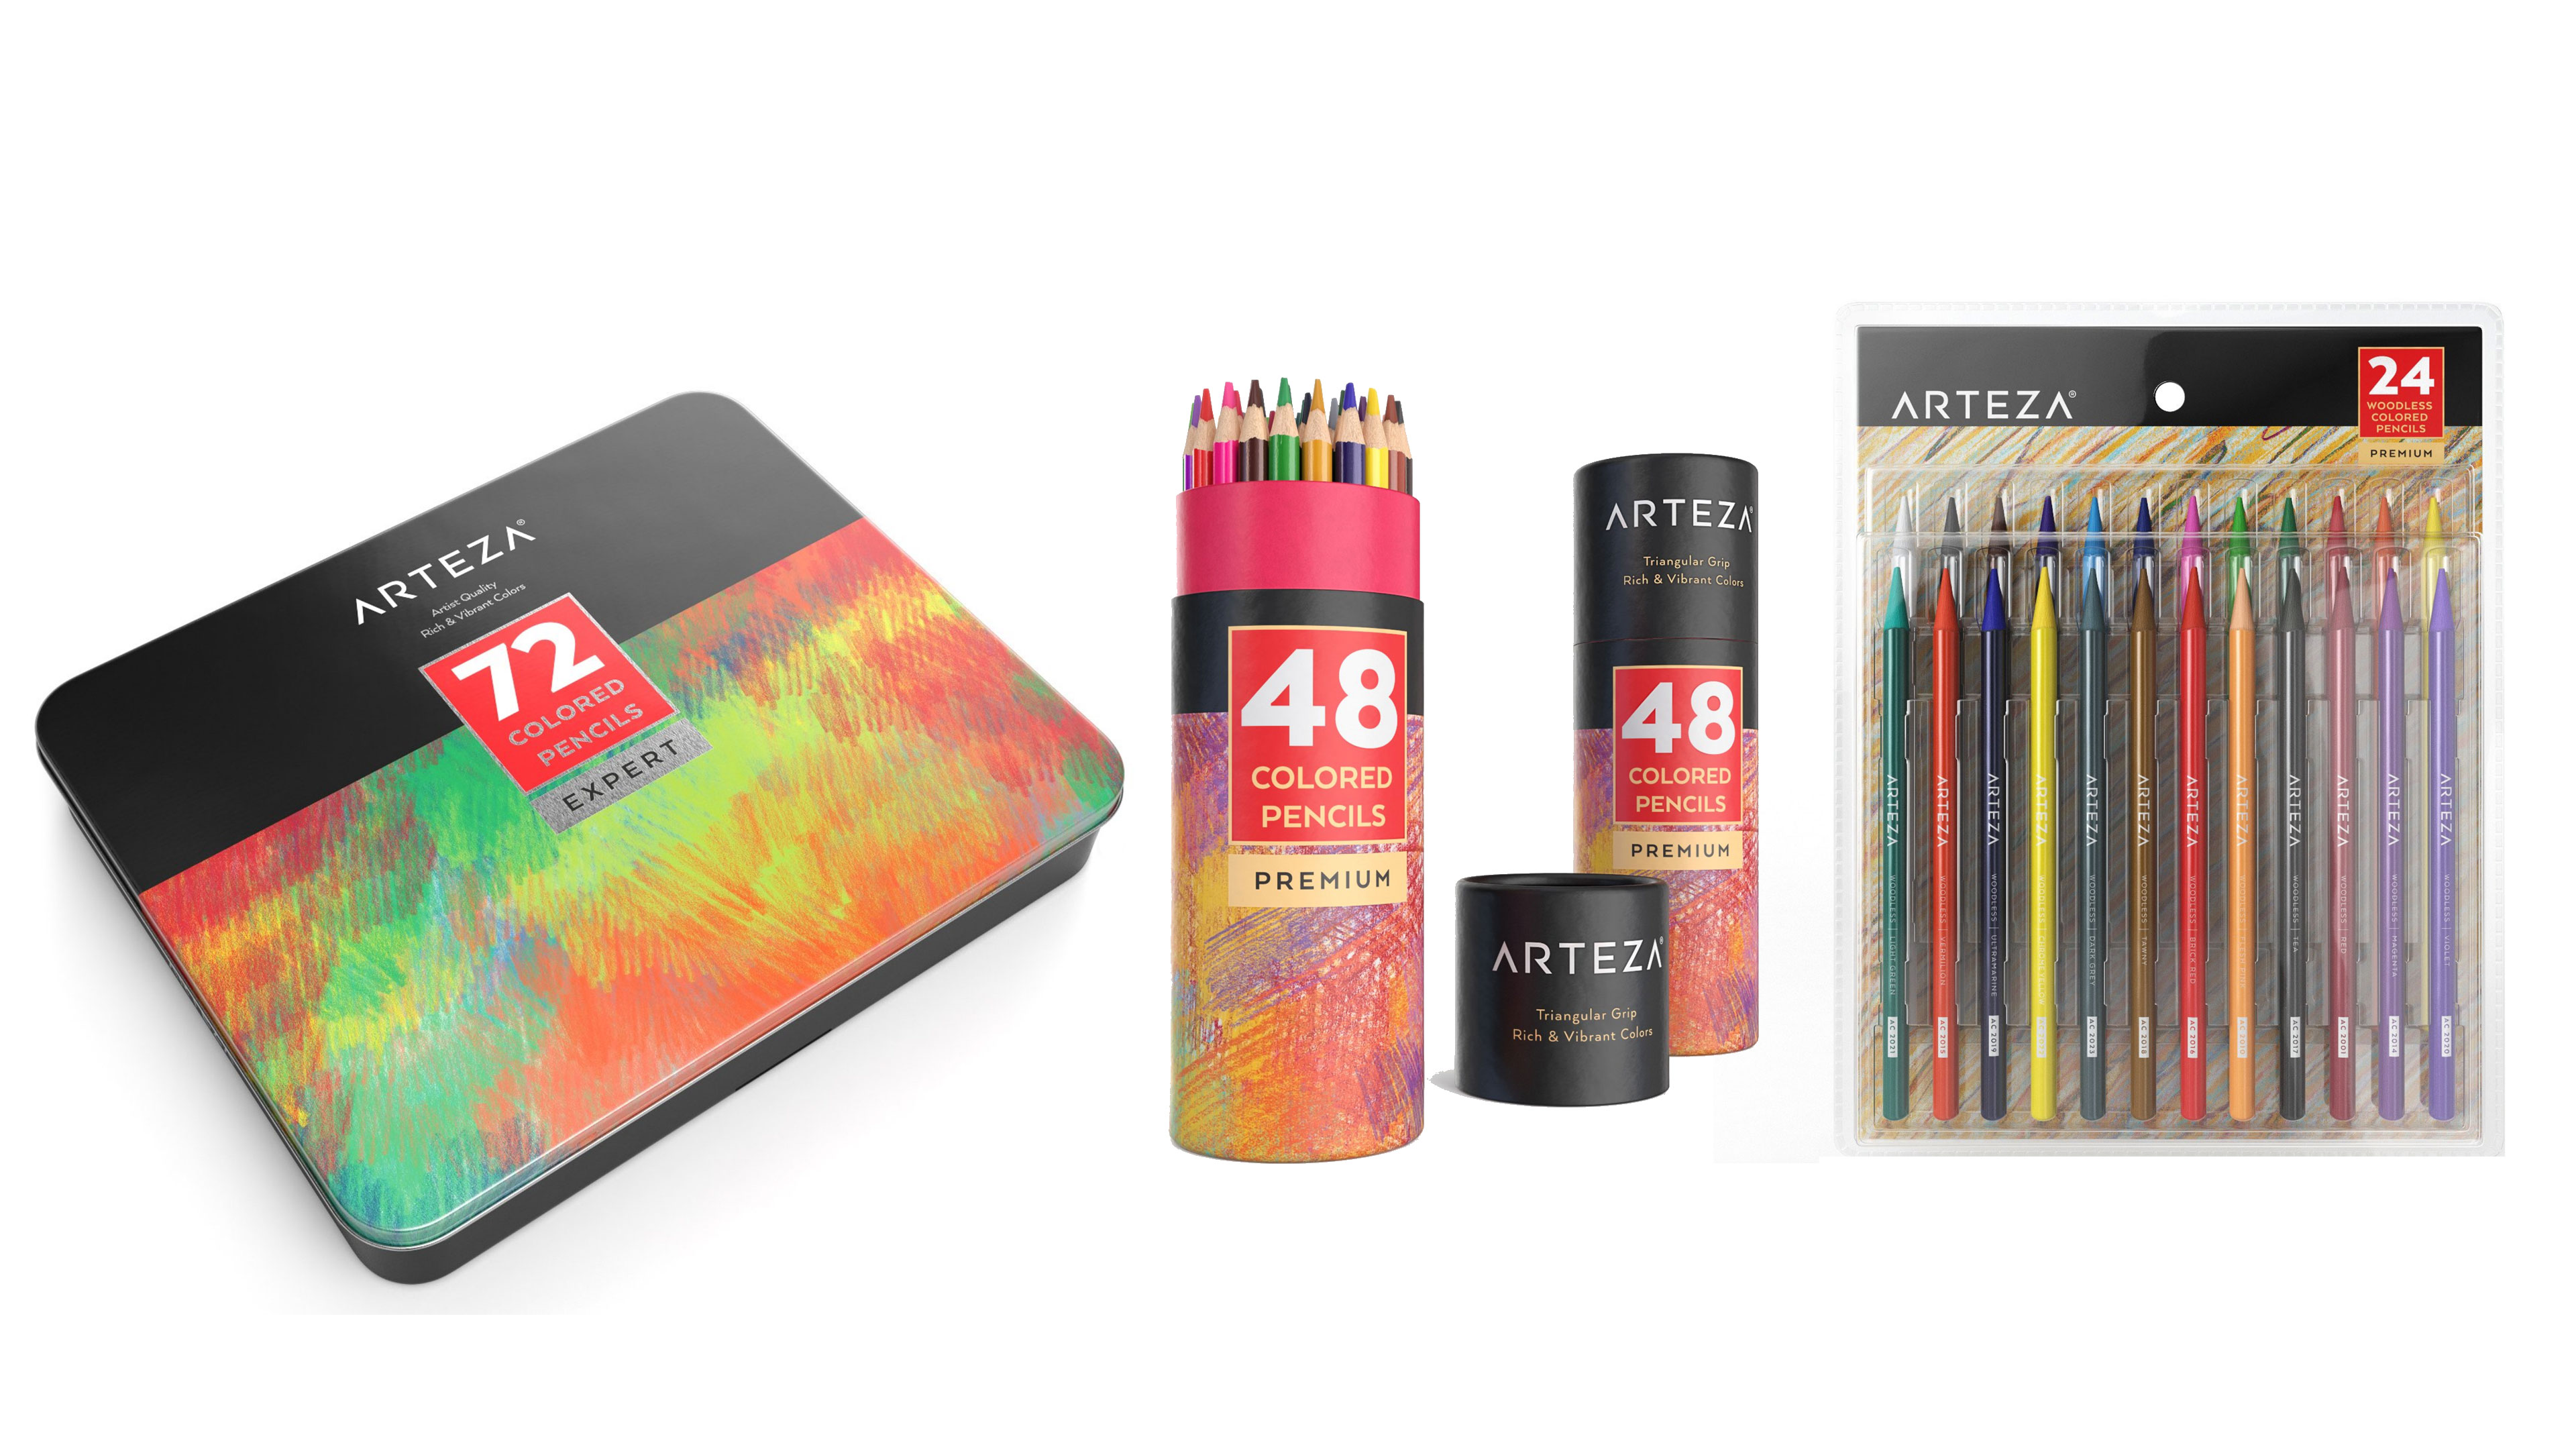 Arteza colored pencils - set of 72, 48 and woodless colored pencils